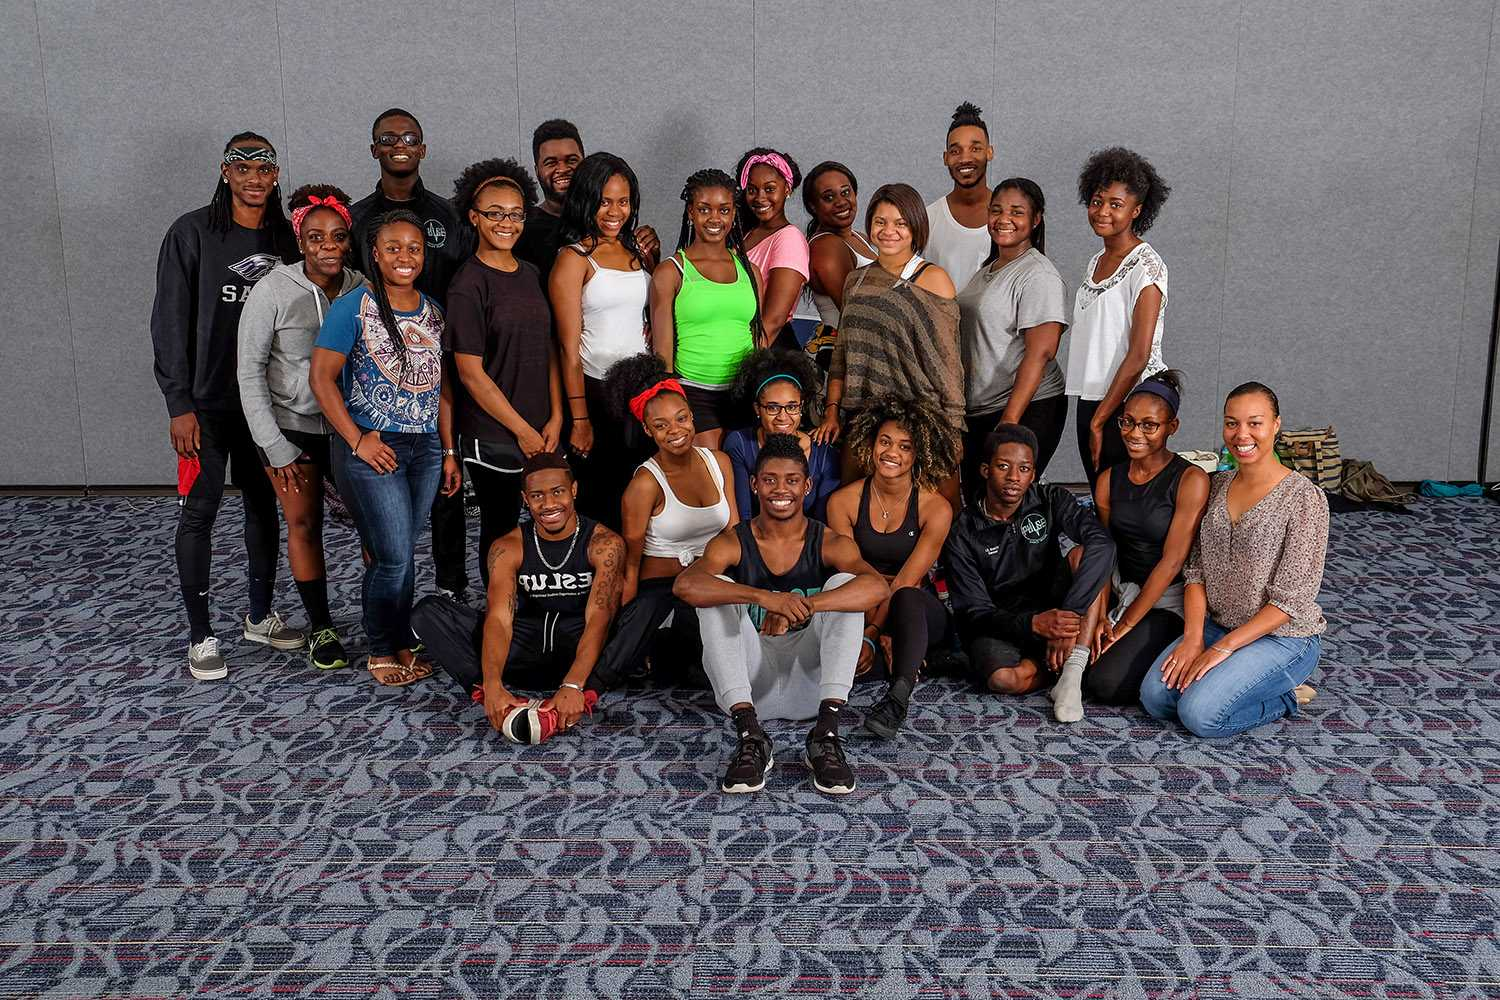 The hip - hop team of Pulse Dance Troupe pose  during their Tuesday practice. Mohammed F Emran | Web Editor